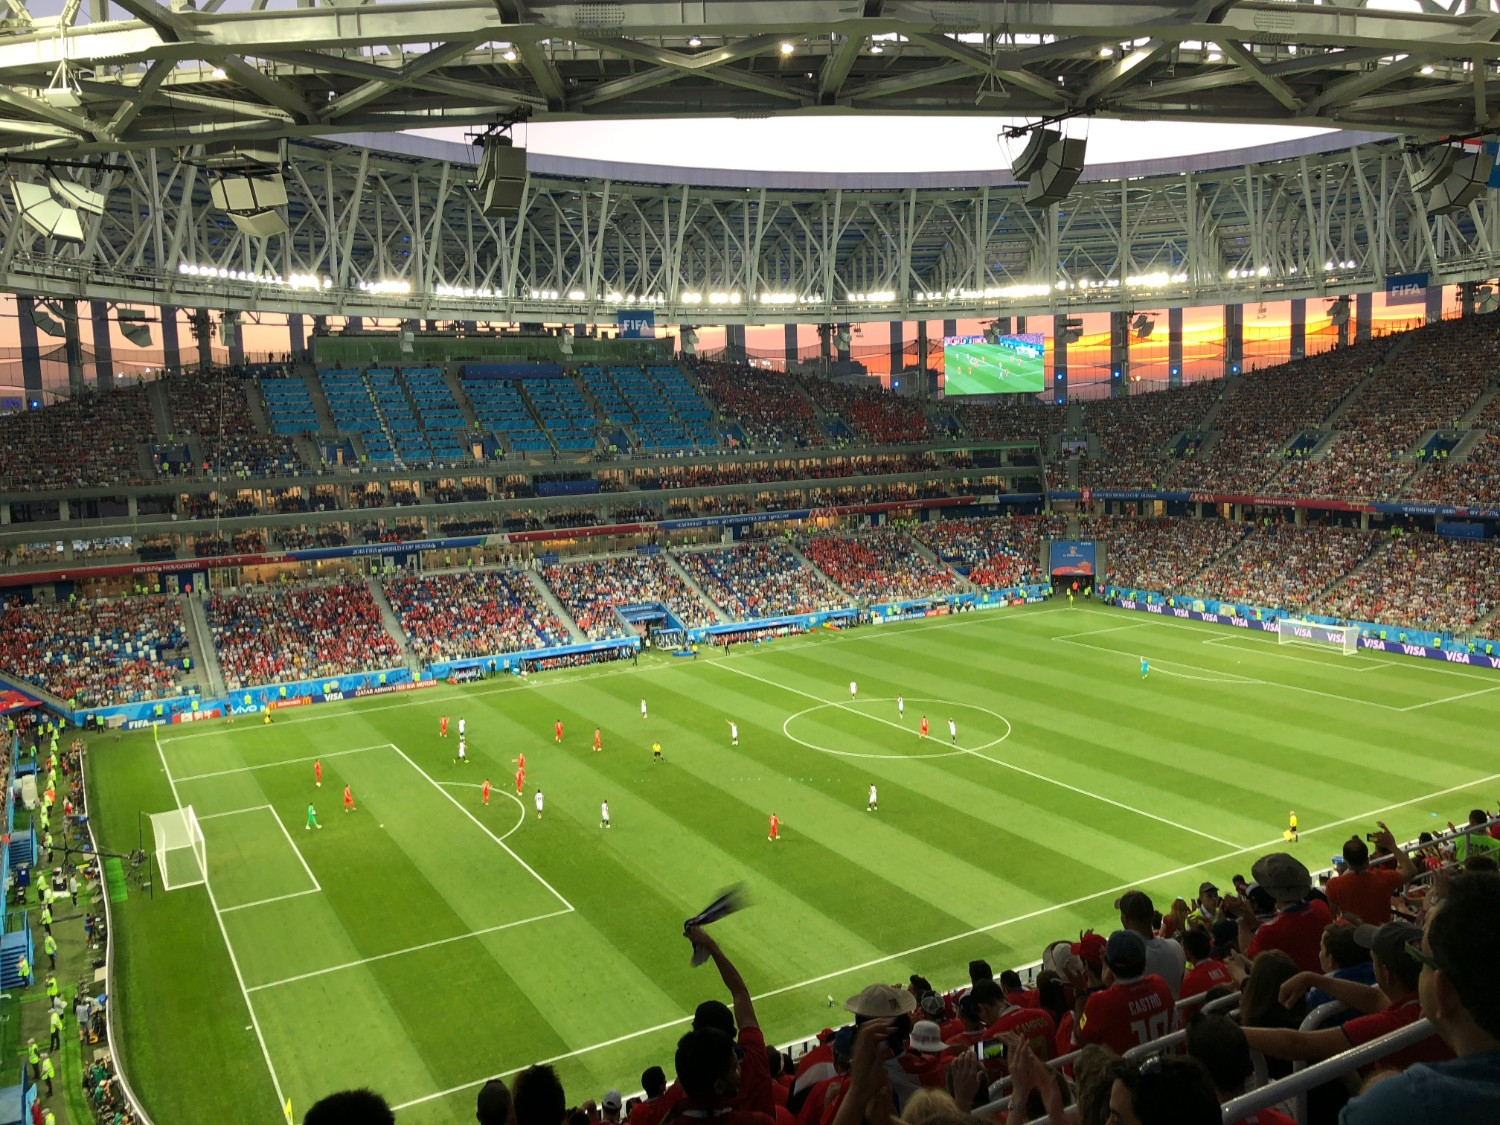 Matt and Kelly go to the World Cup 2018 Switzerland vs Costa Rica game in Russia. boldlygotravel.com